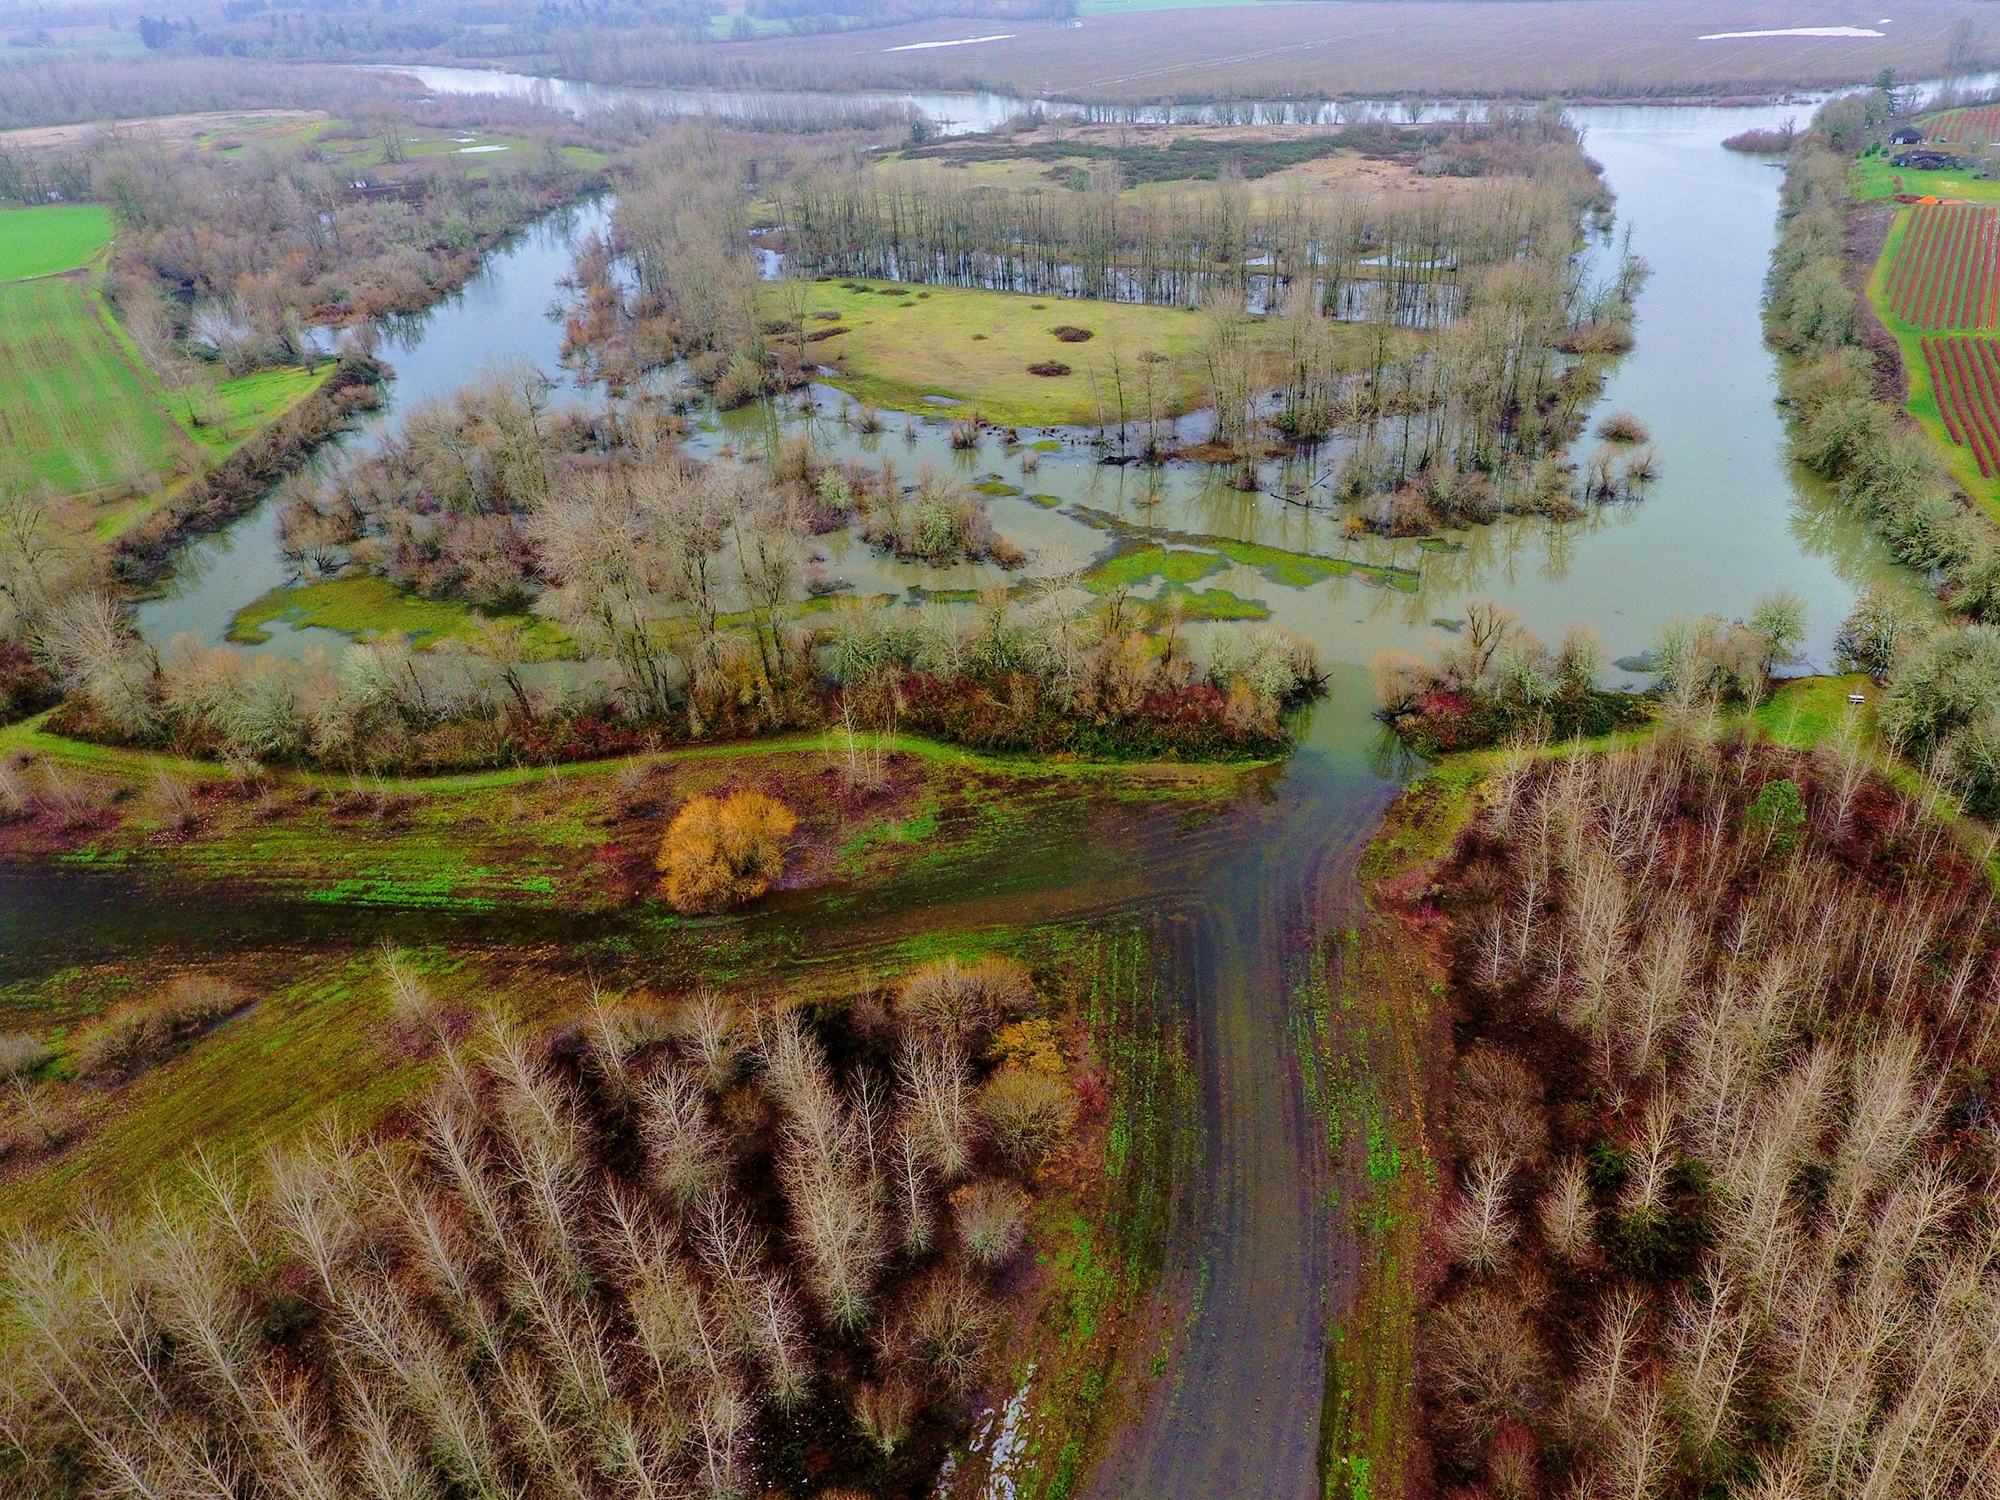 Aerial photo of Snag Boat Bend on the main stem of the Willamette River during last springs high water.